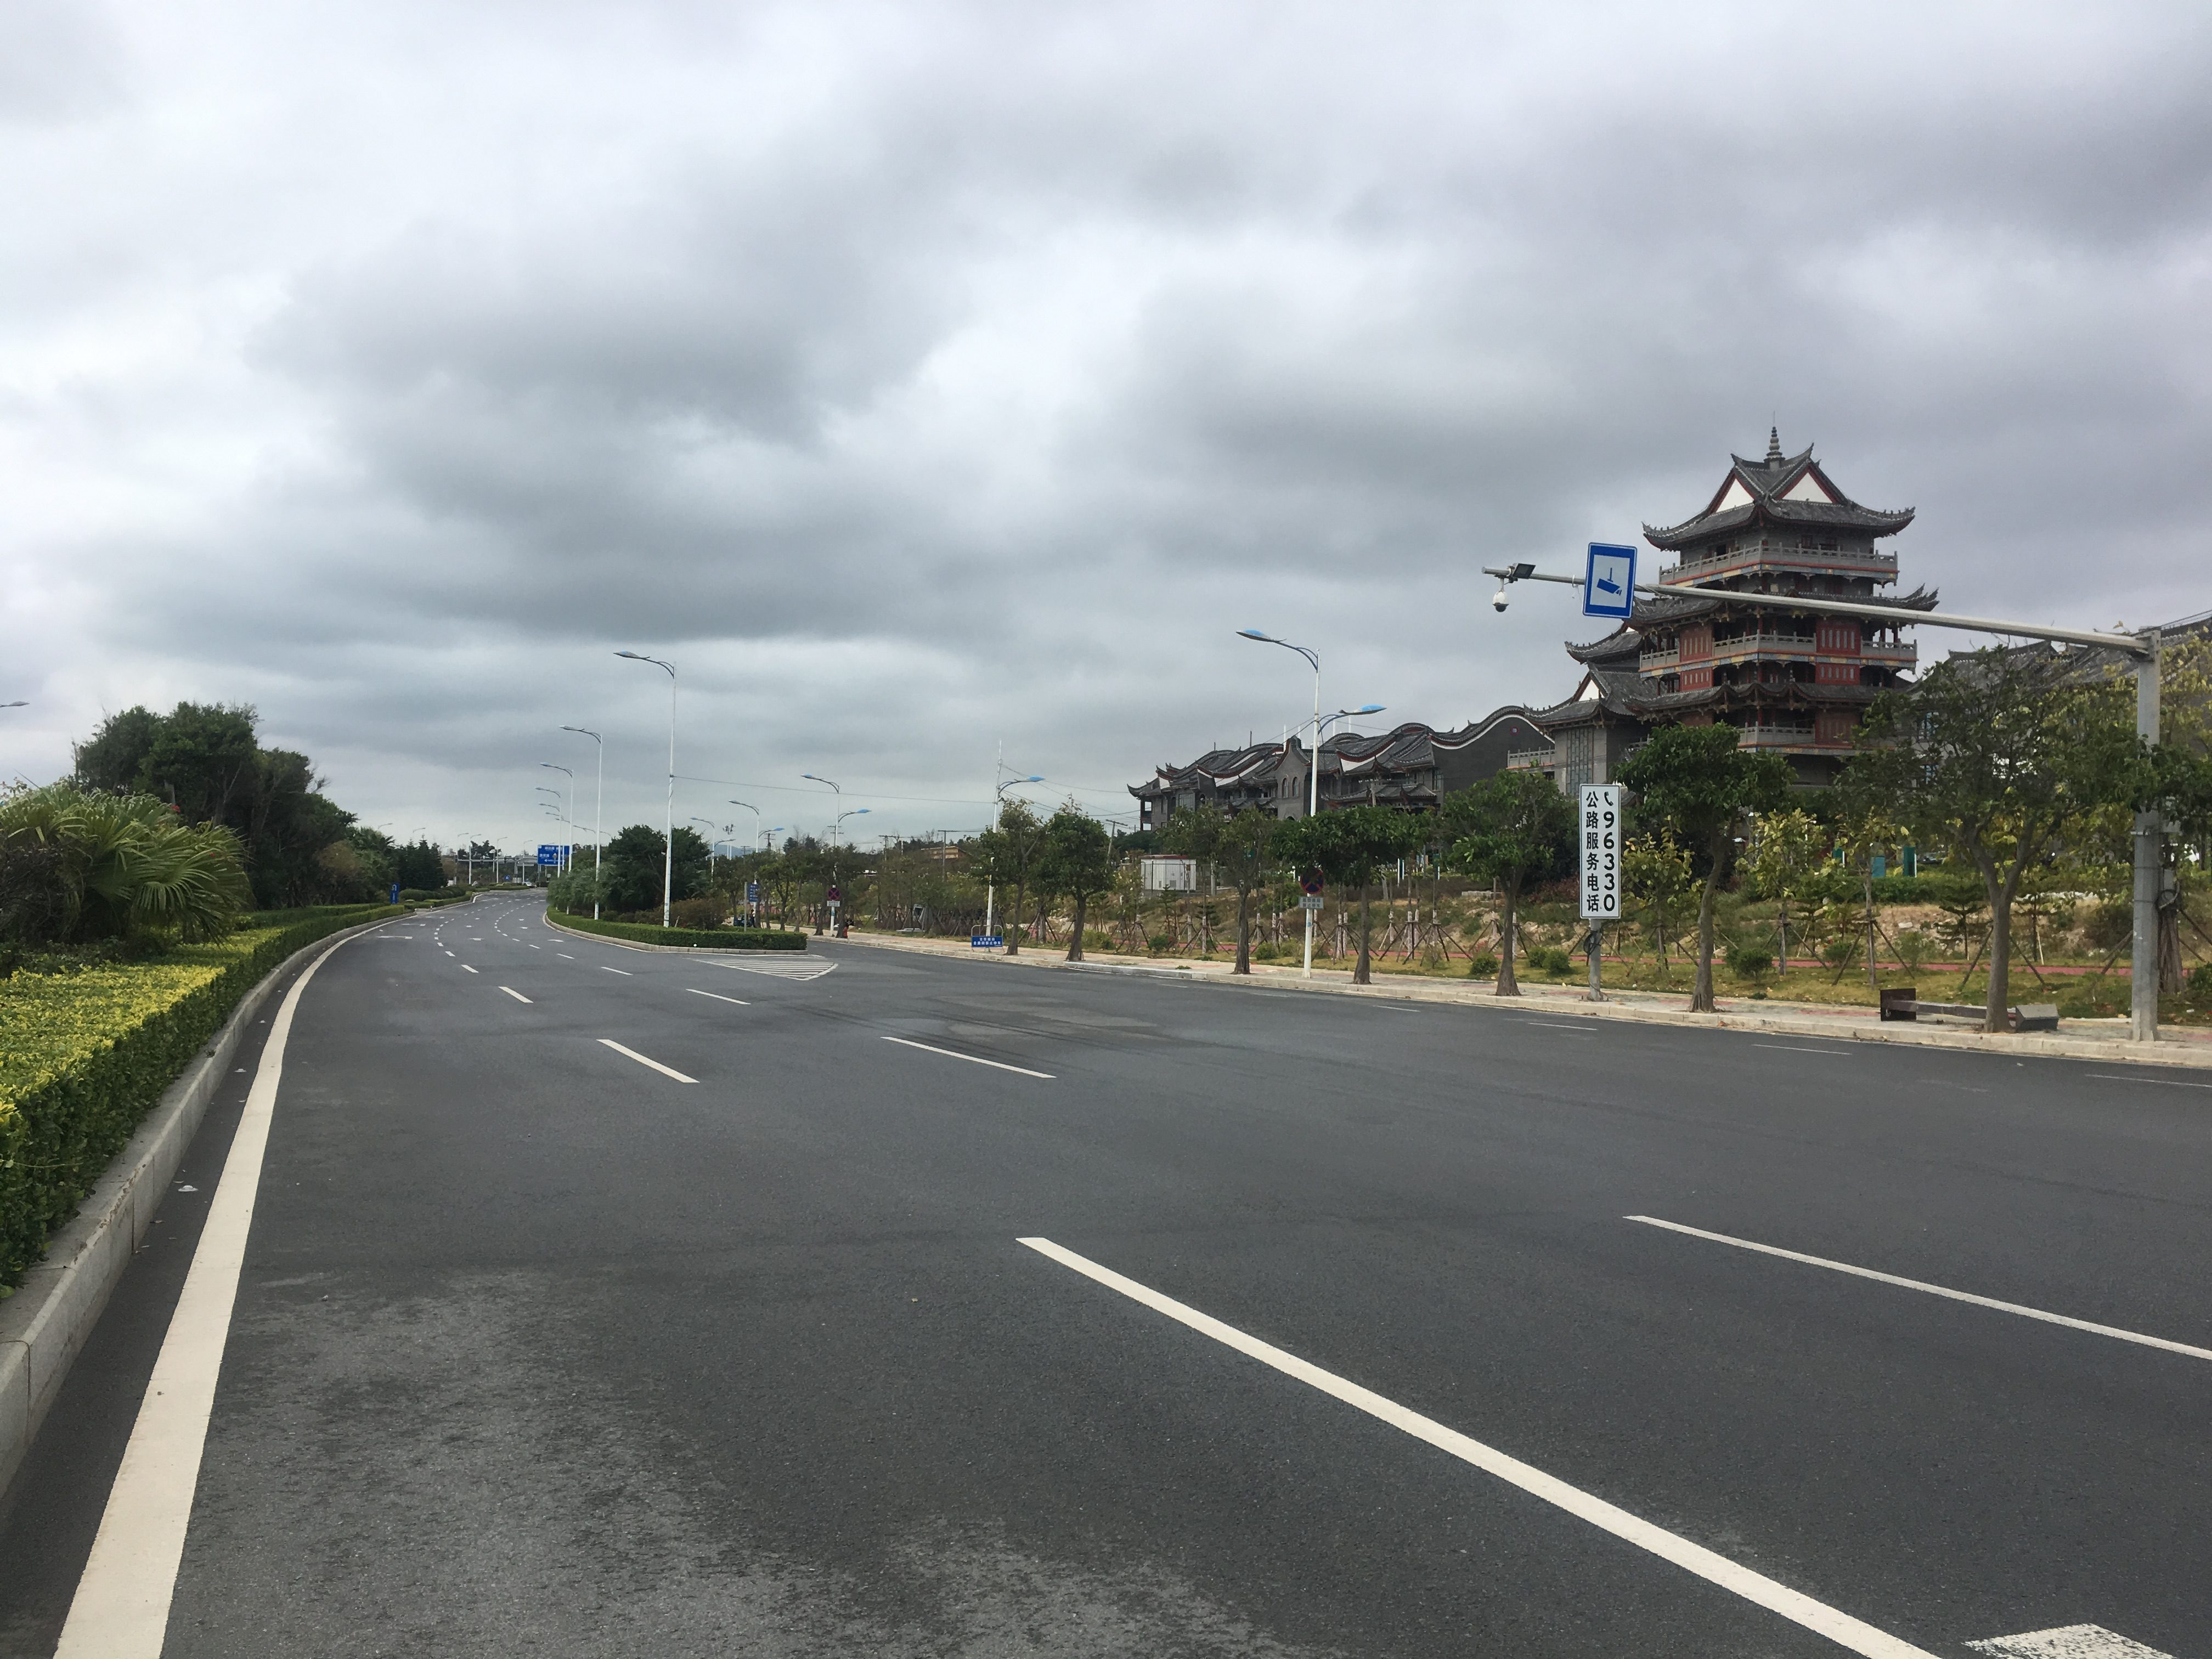 Half-way across the road. The 'Old China' theme park is to the right.